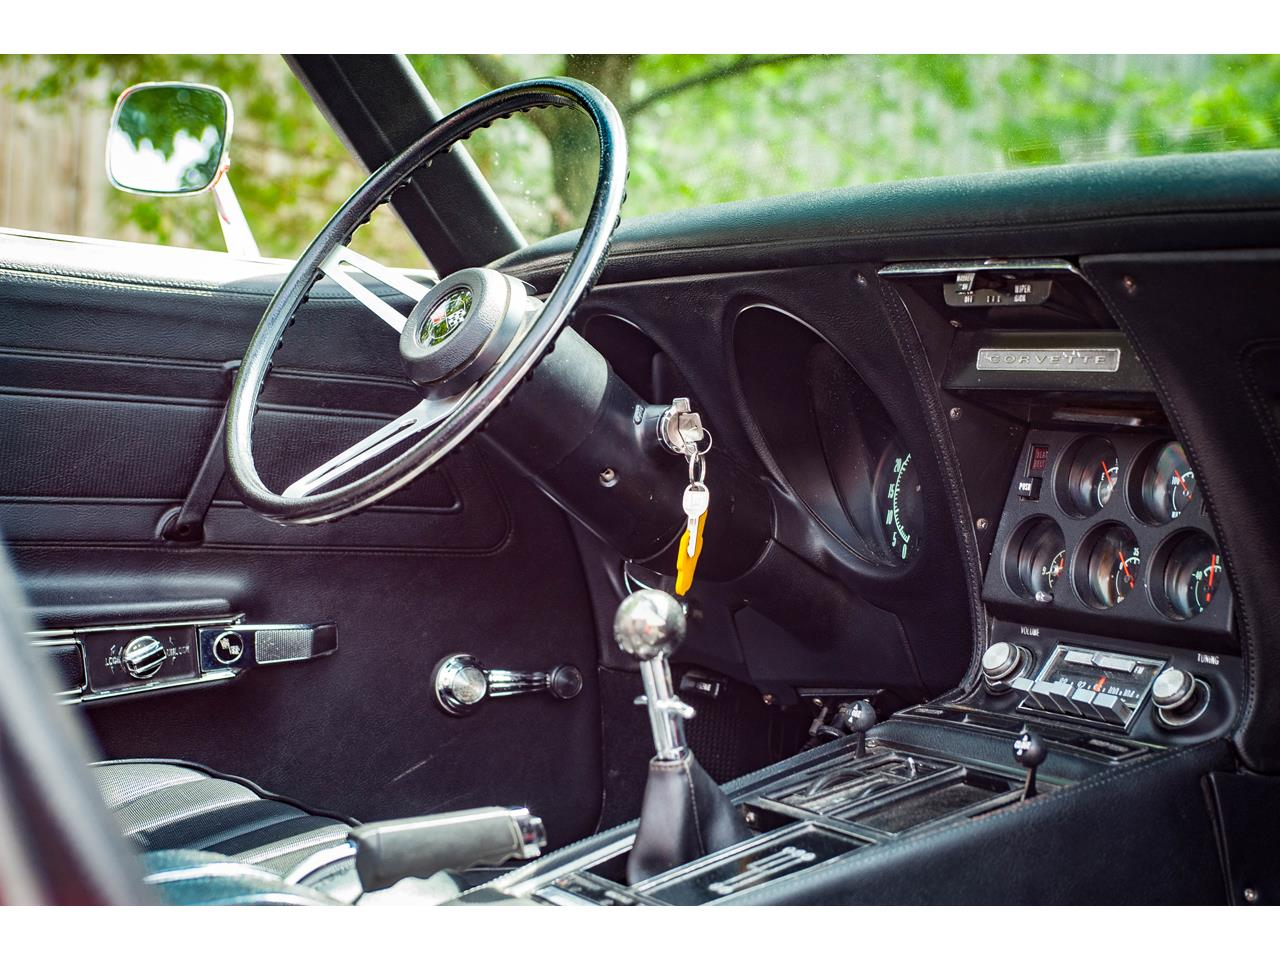 Large Picture of 1971 Corvette located in Illinois - $40,500.00 Offered by Gateway Classic Cars - St. Louis - QB9M